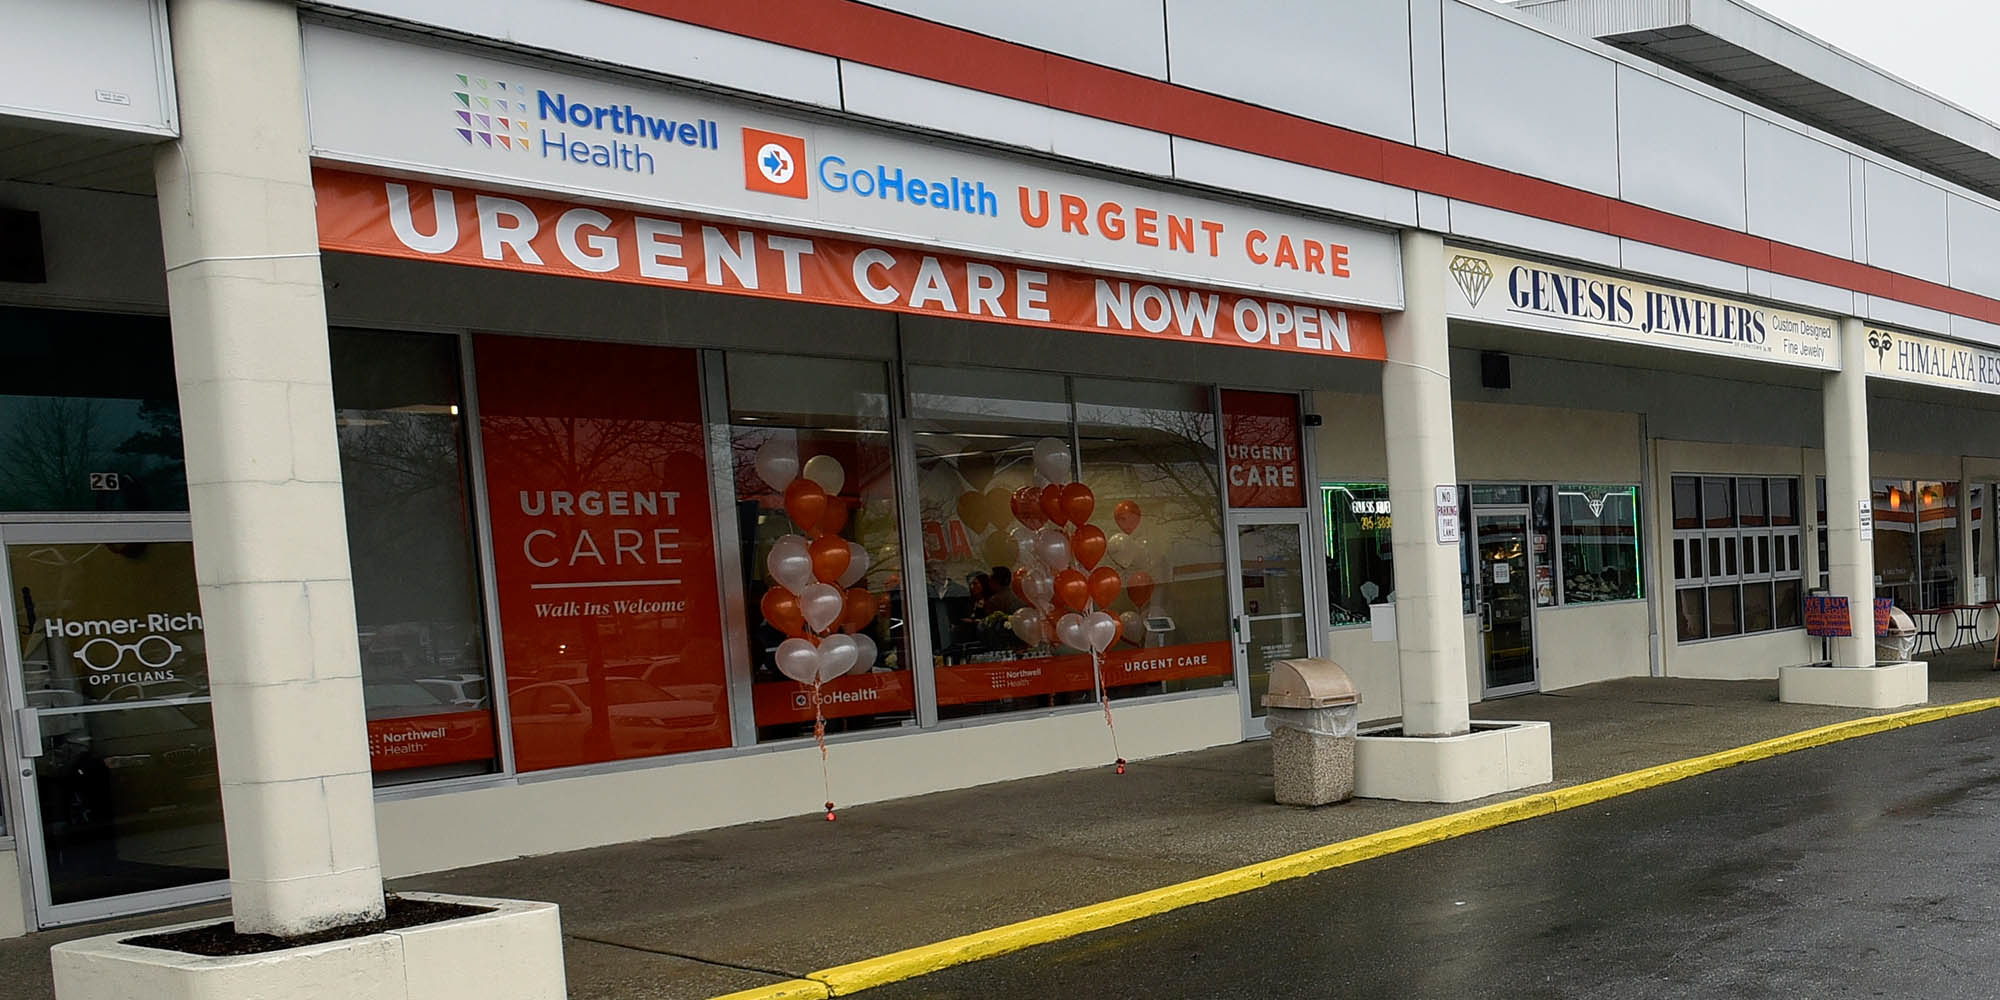 northwell health gohealth urgent care triangle center northwell health gohealth urgent care 28 30 triangle center yorktown heights ny medical mapquest